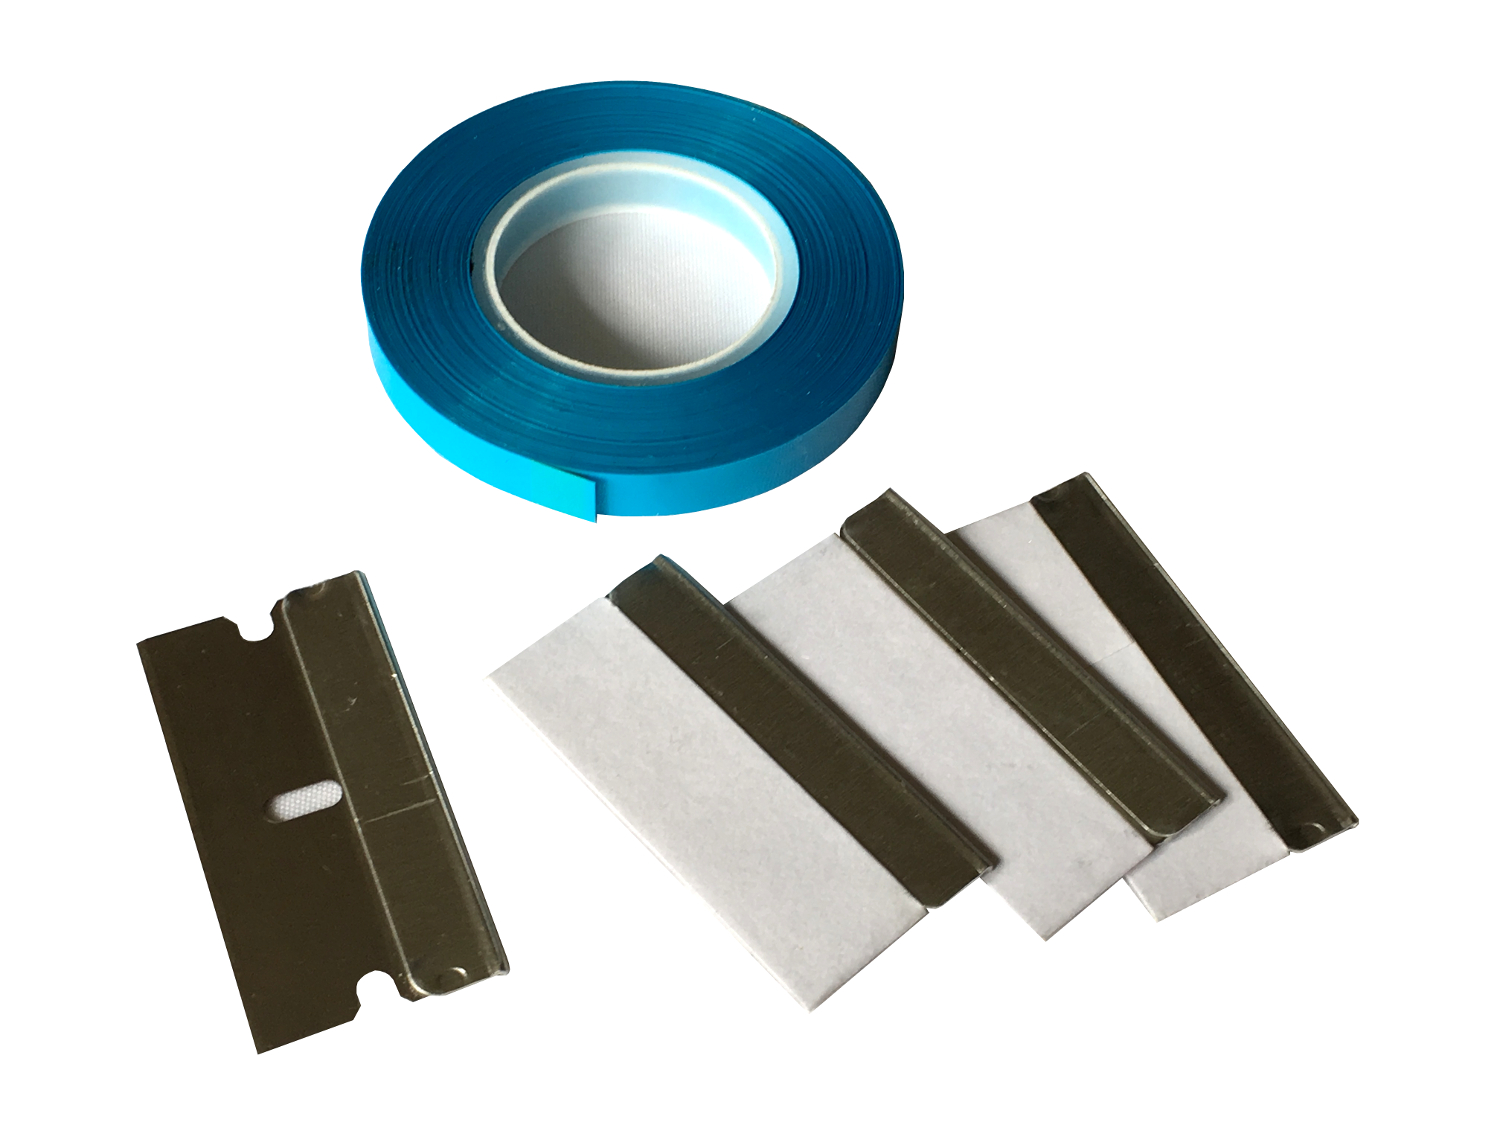 Leader tape clear Leader tape white Splice tape Reel to reel tape accessories